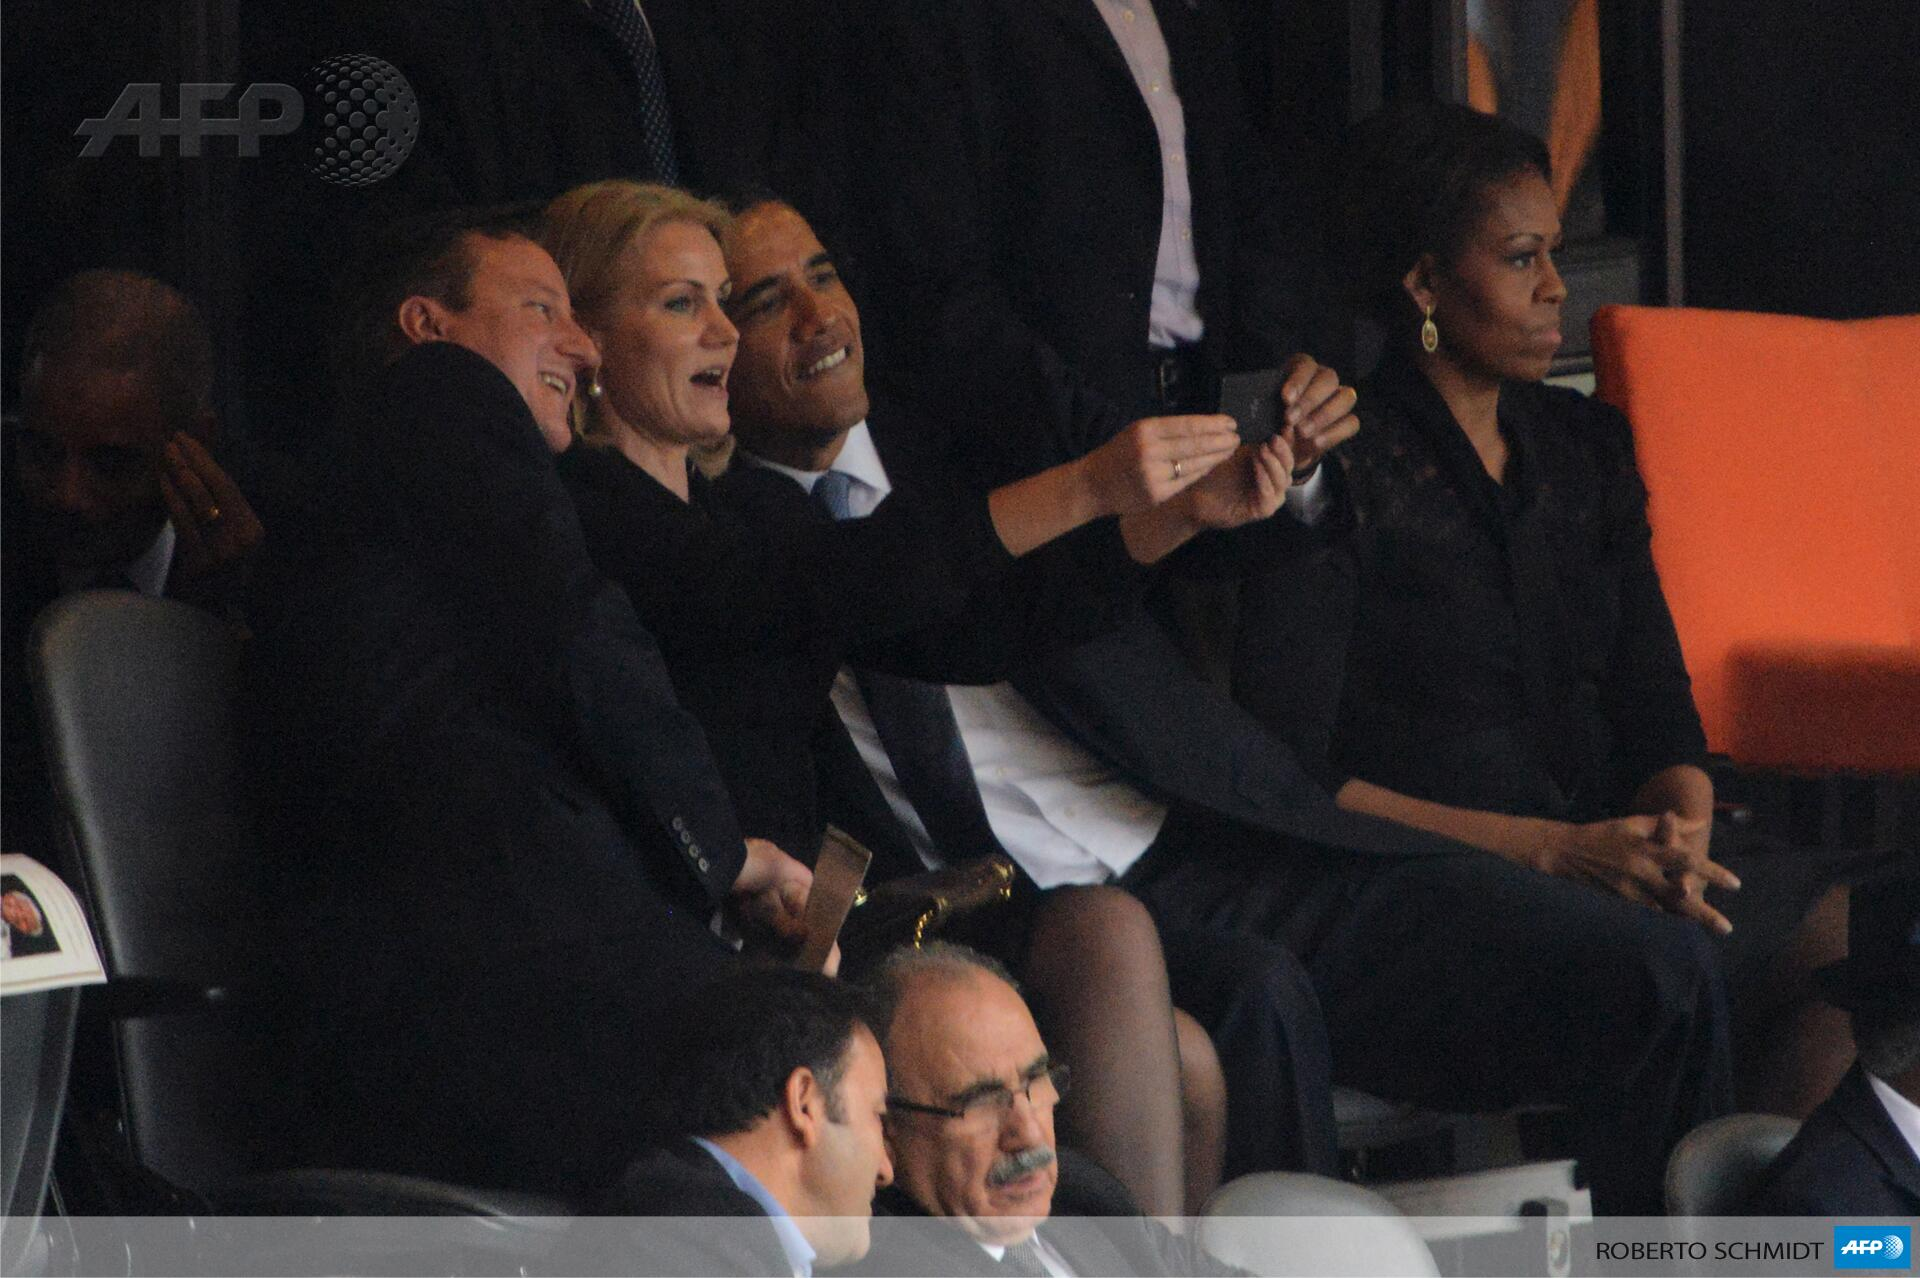 Selfie for British PM David Cameron, Danish PM Helle Thorning Schmidt & Barack Obama #MandelaMemorial It's playtime!